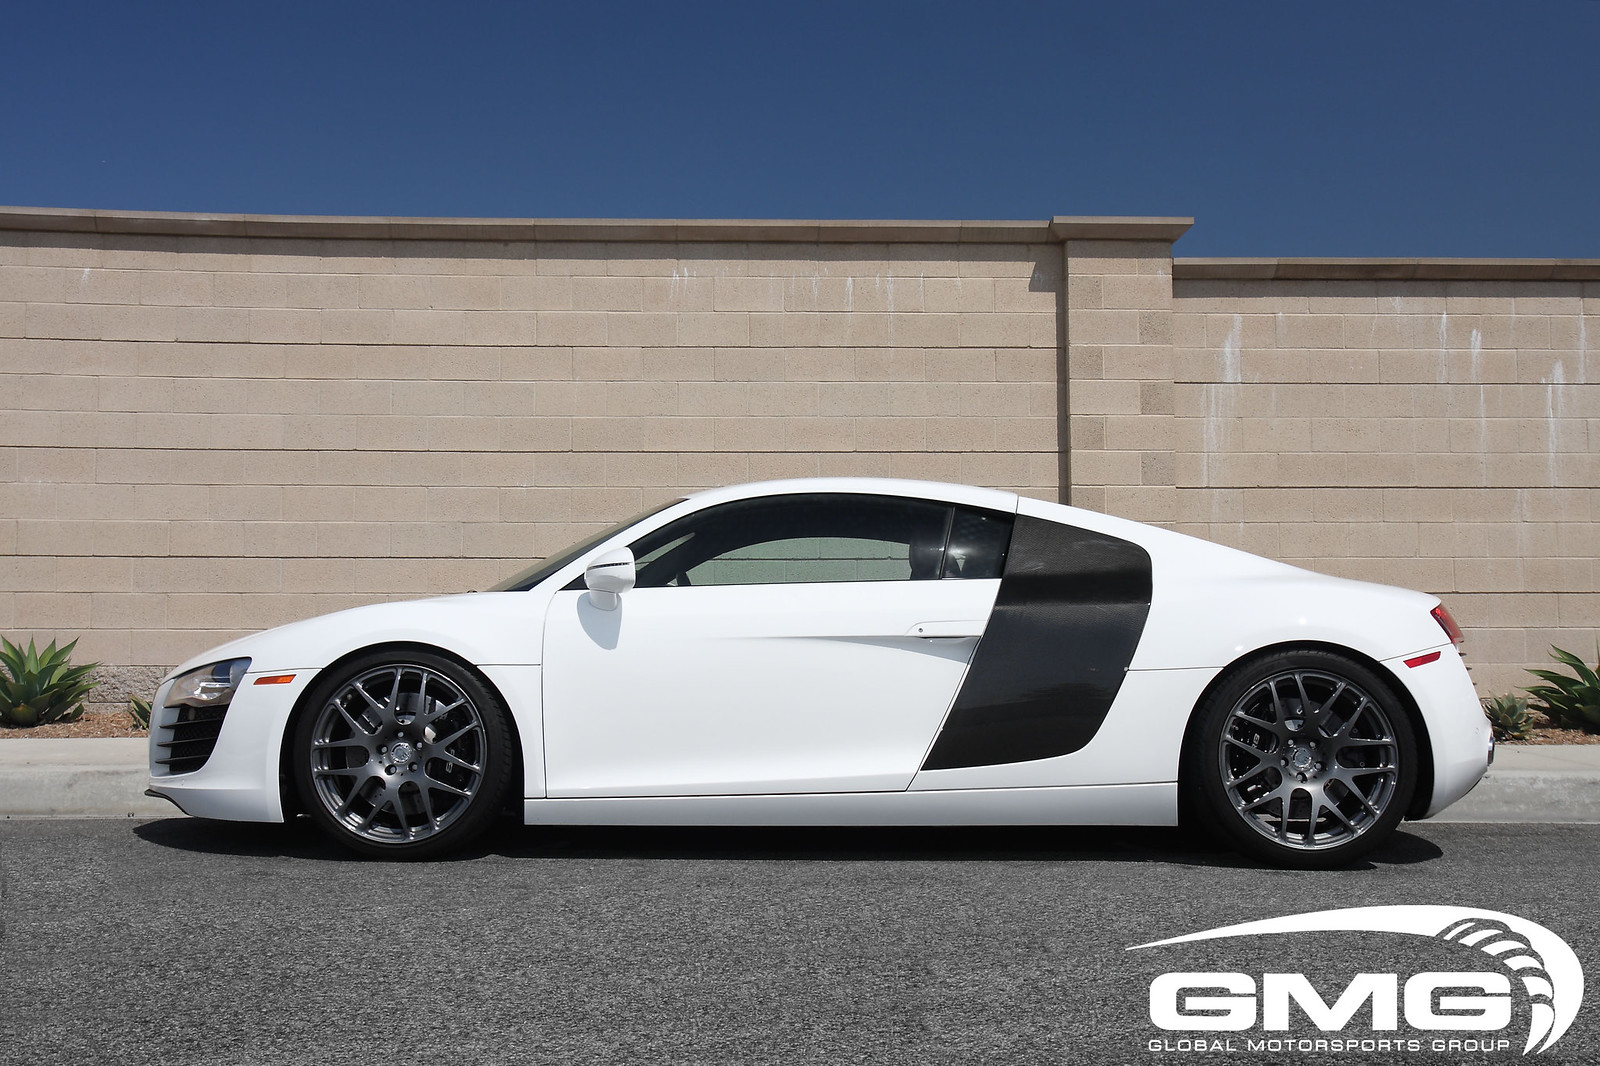 Gmg Racing For Sale Hre M40 Wheels For Audi R8